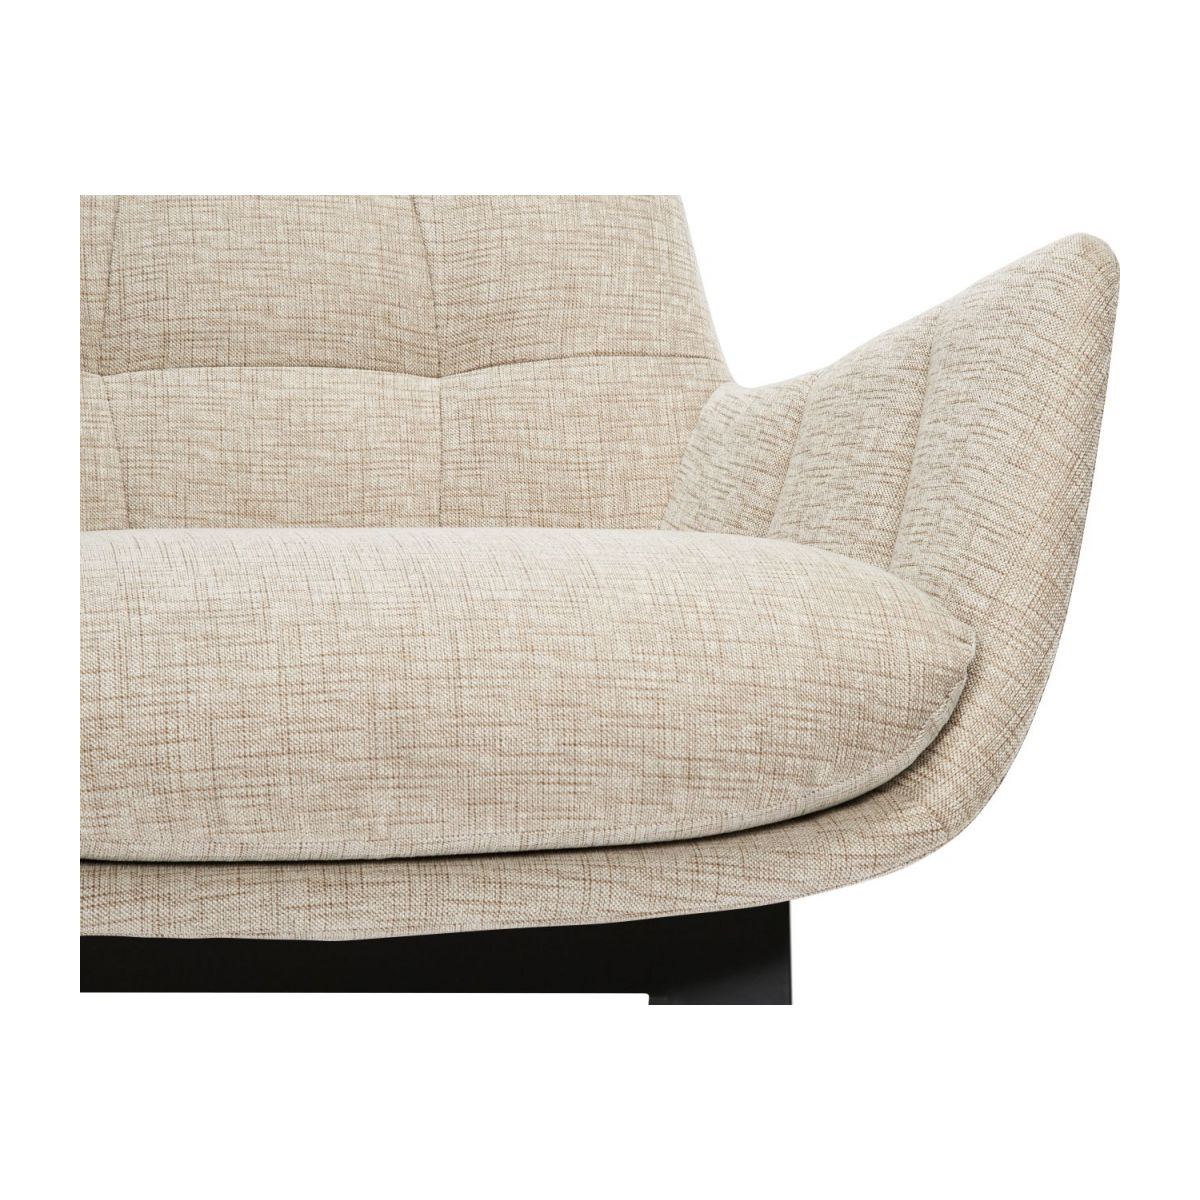 Armchair in Ancio fabric, nature with dark oak legs n°8